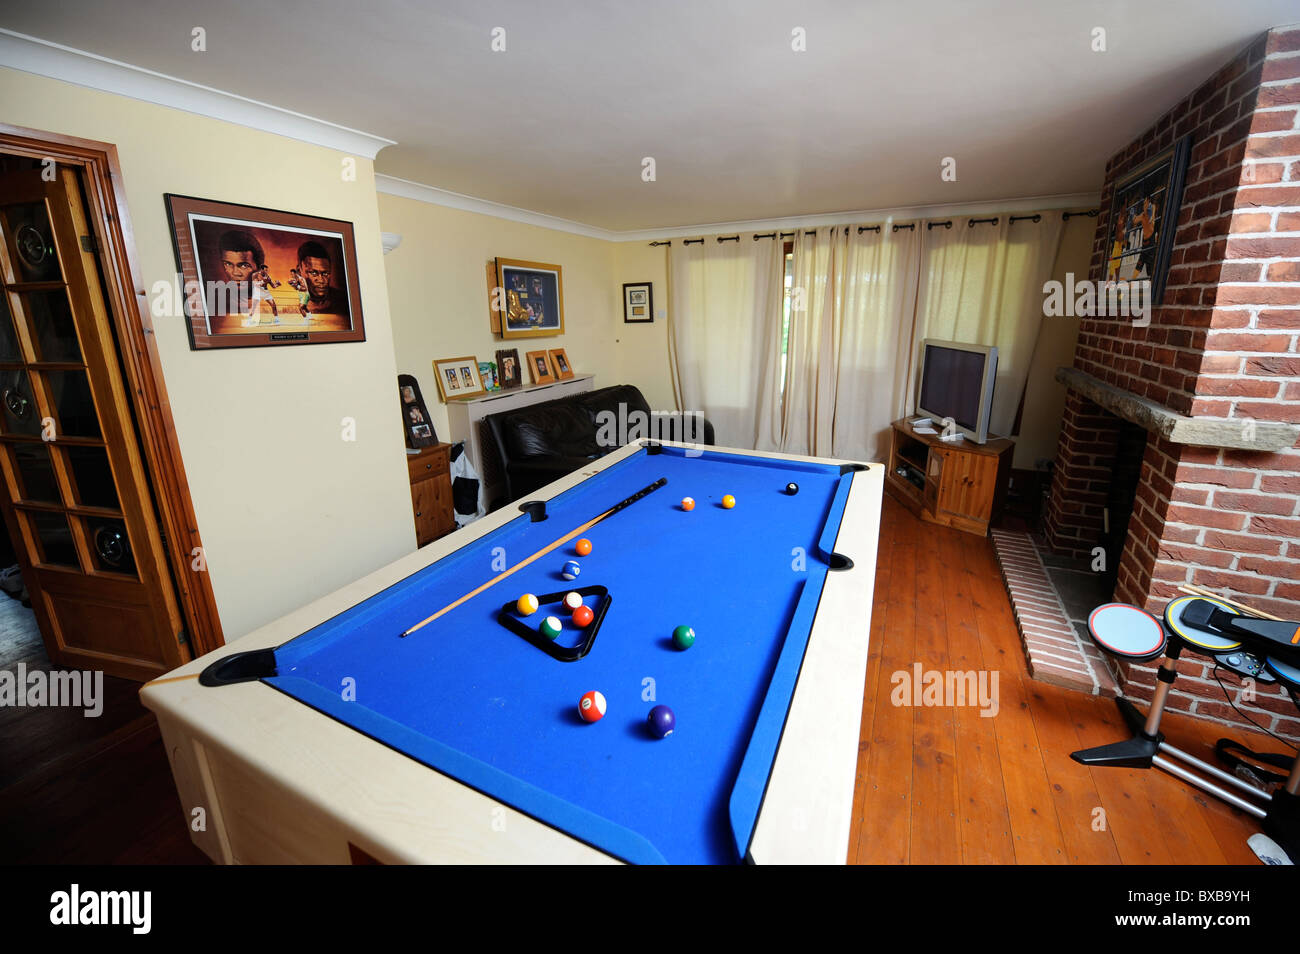 Pool Table In A Games Room In A Home Uk Stock Photo